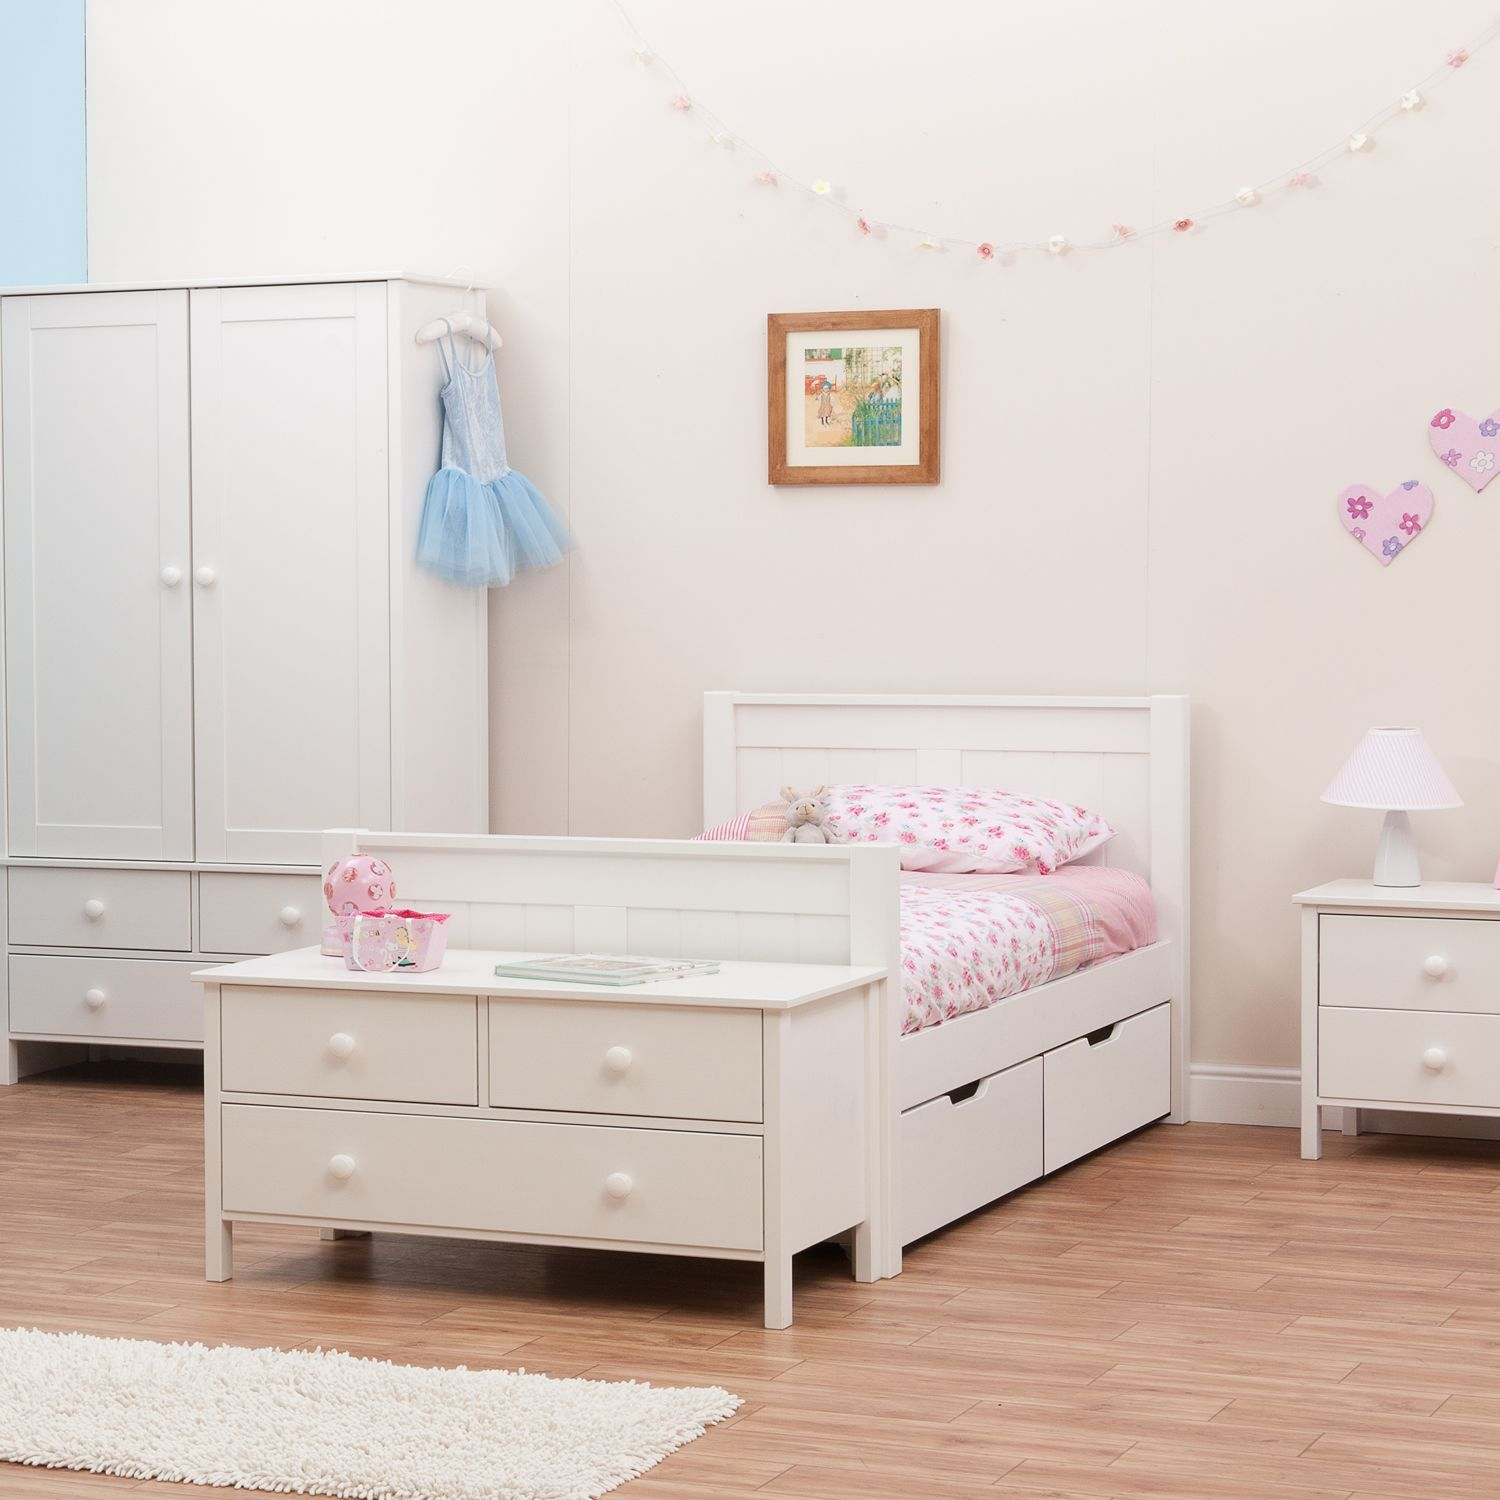 Single Beds For Kids Stompa Classic Kids 3ft Single Wooden Bed White A